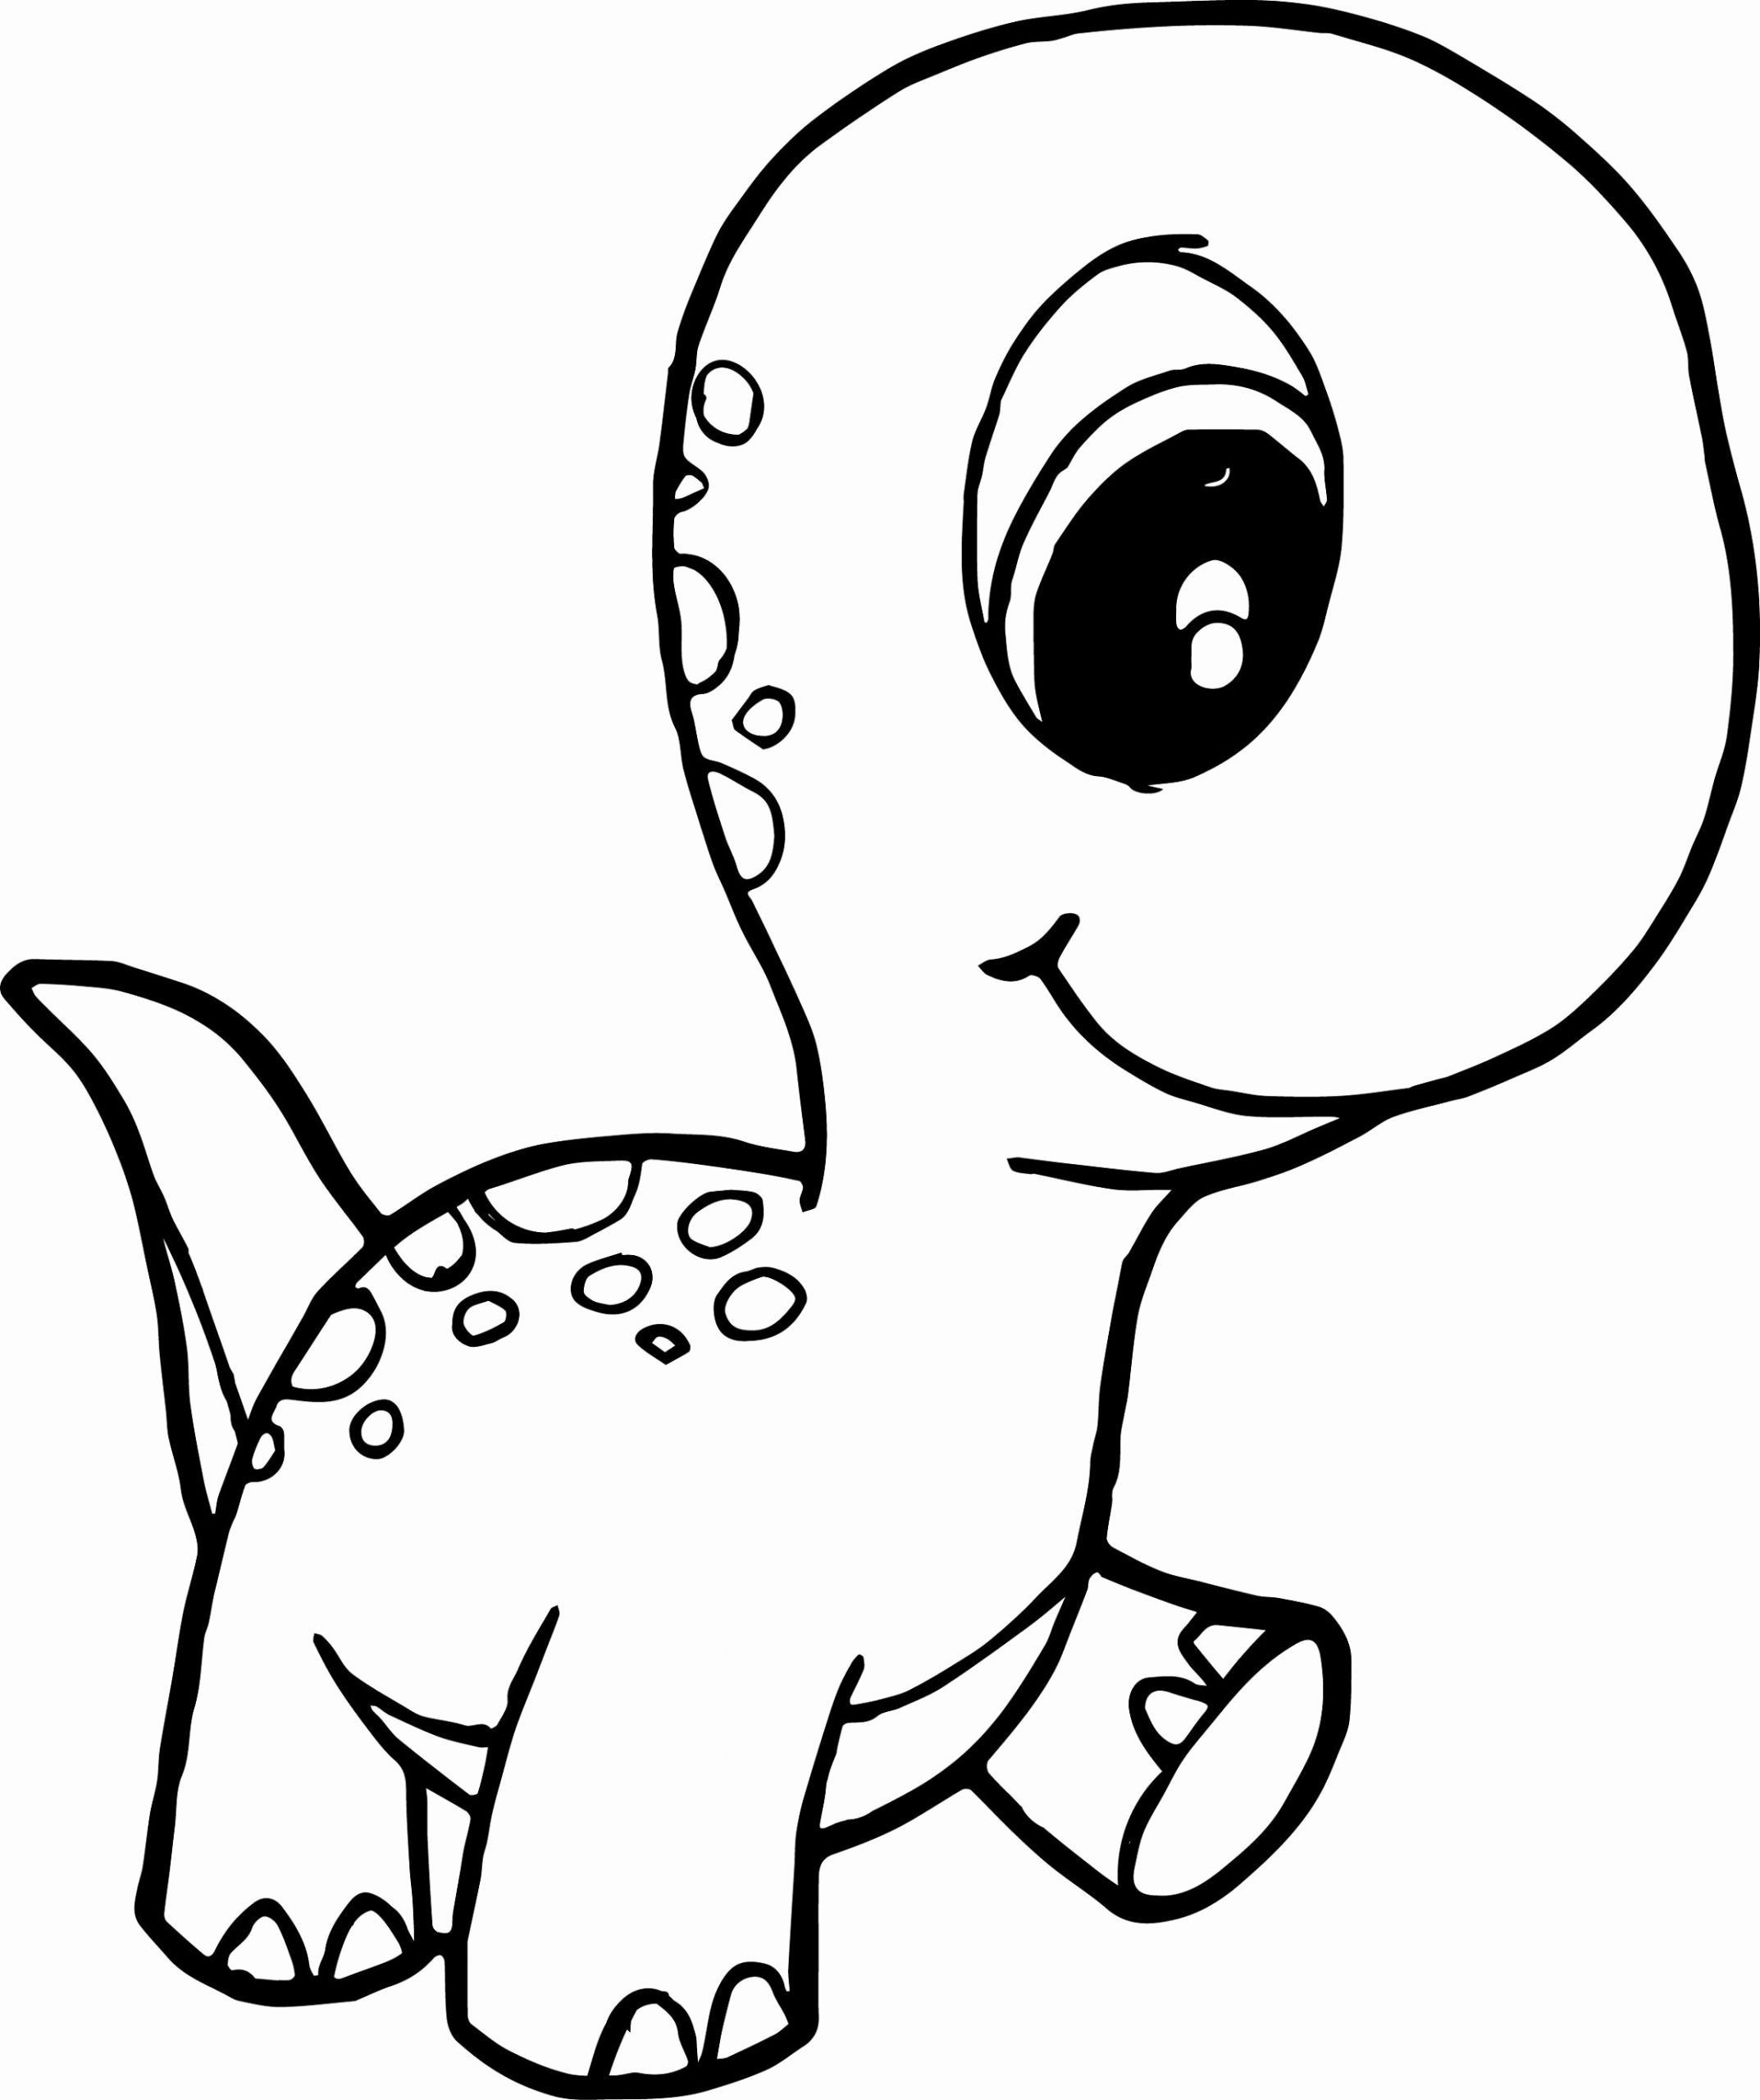 Cute Baby Animal Coloring Pages Fresh Baby Dinosaur Coloring Pages For Preschoolers Dinosaur Coloring Dinosaur Coloring Pages Cute Coloring Pages